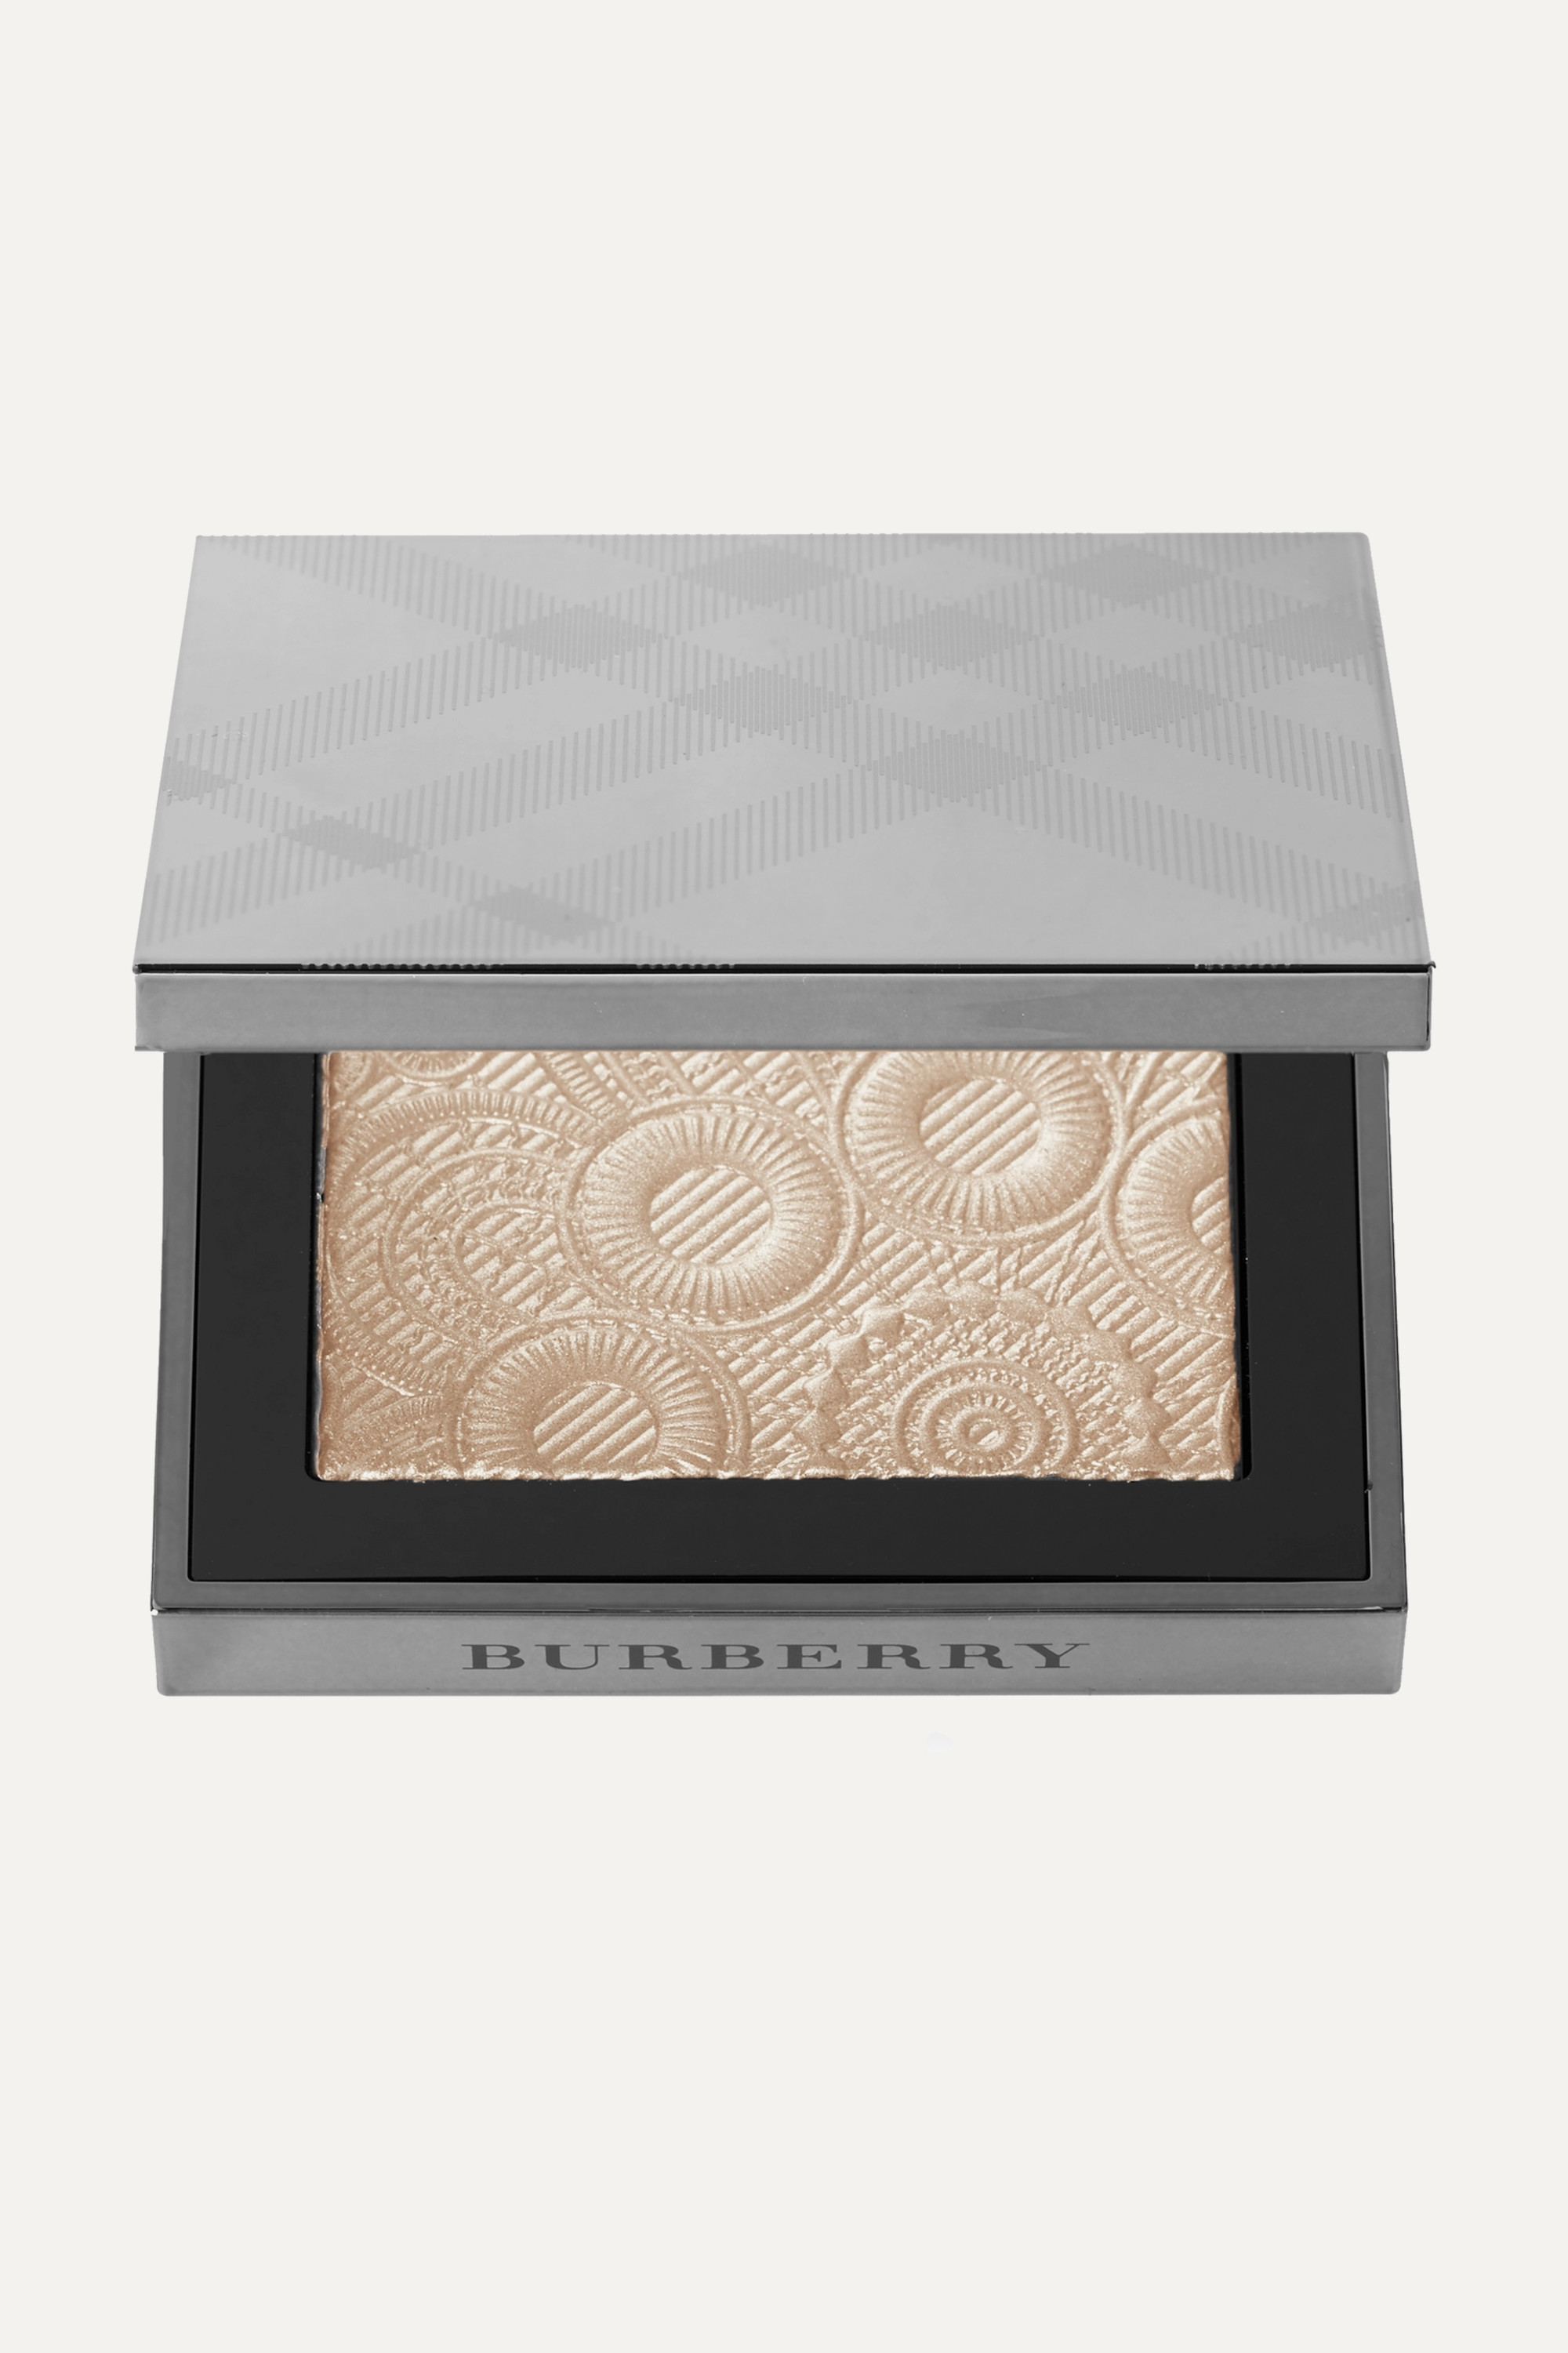 Burberry Beauty Fresh Glow Highlighter - Nude Gold No.02